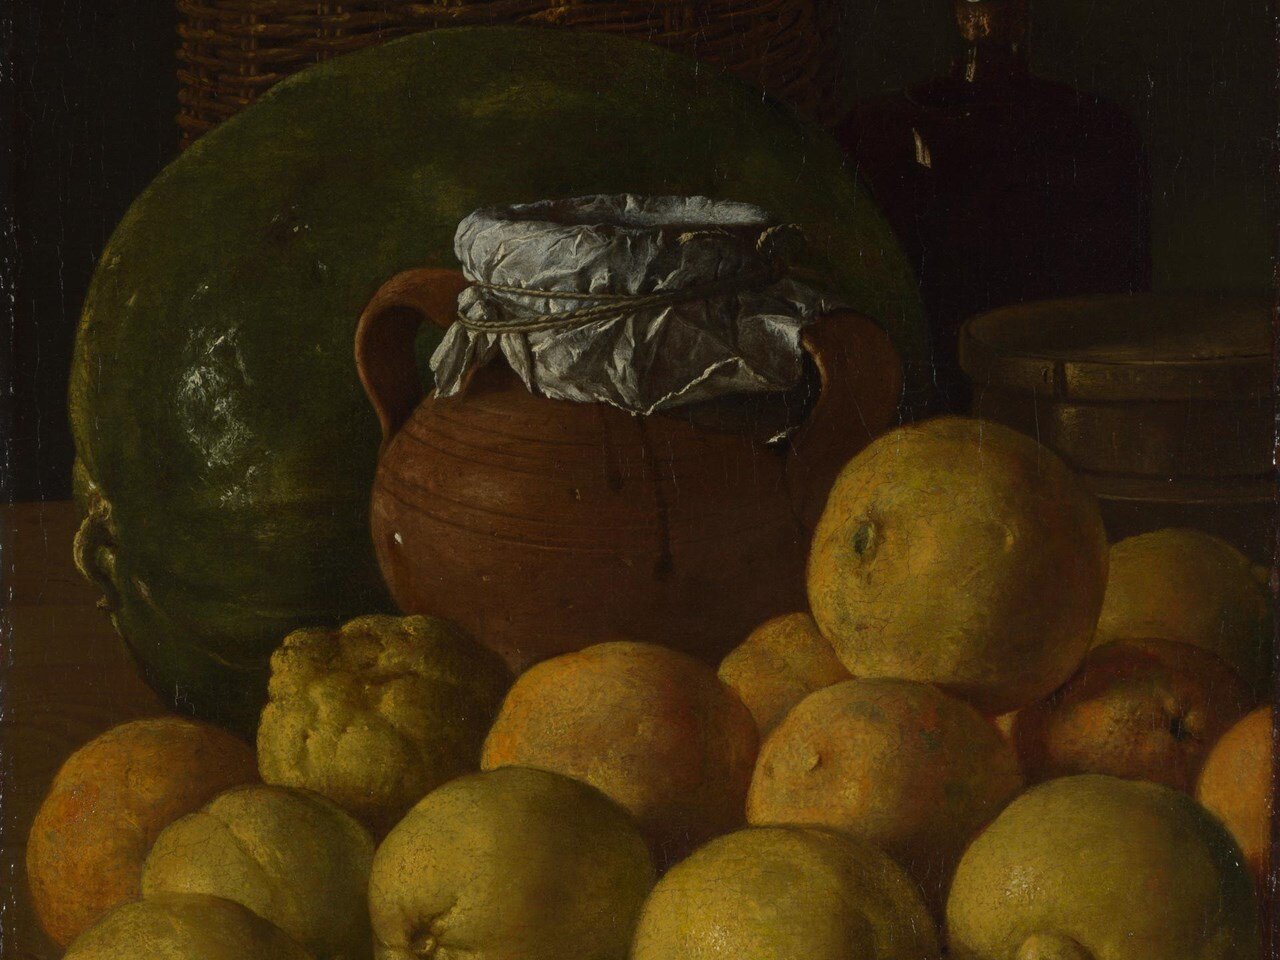 Luis Egidio Meléndez,  Still Life With Lemons and Oranges  (1716-1780), The National Gallery